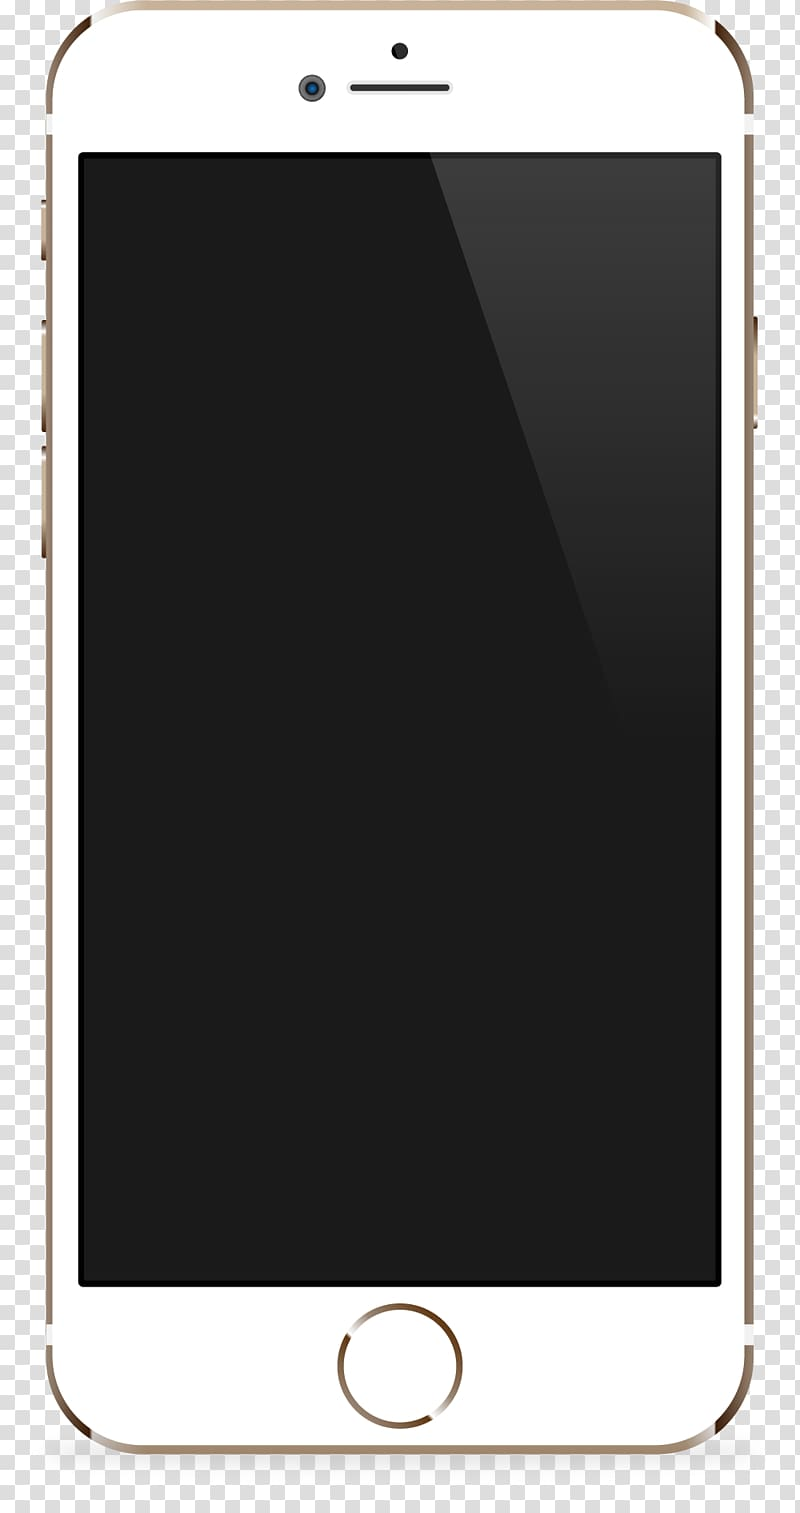 Ihpone 7 sketch png transparent artwork clipart picture freeuse Gold iPhone 6 illustration, iPhone 8 iPhone 7 iPhone X Smartphone ... picture freeuse